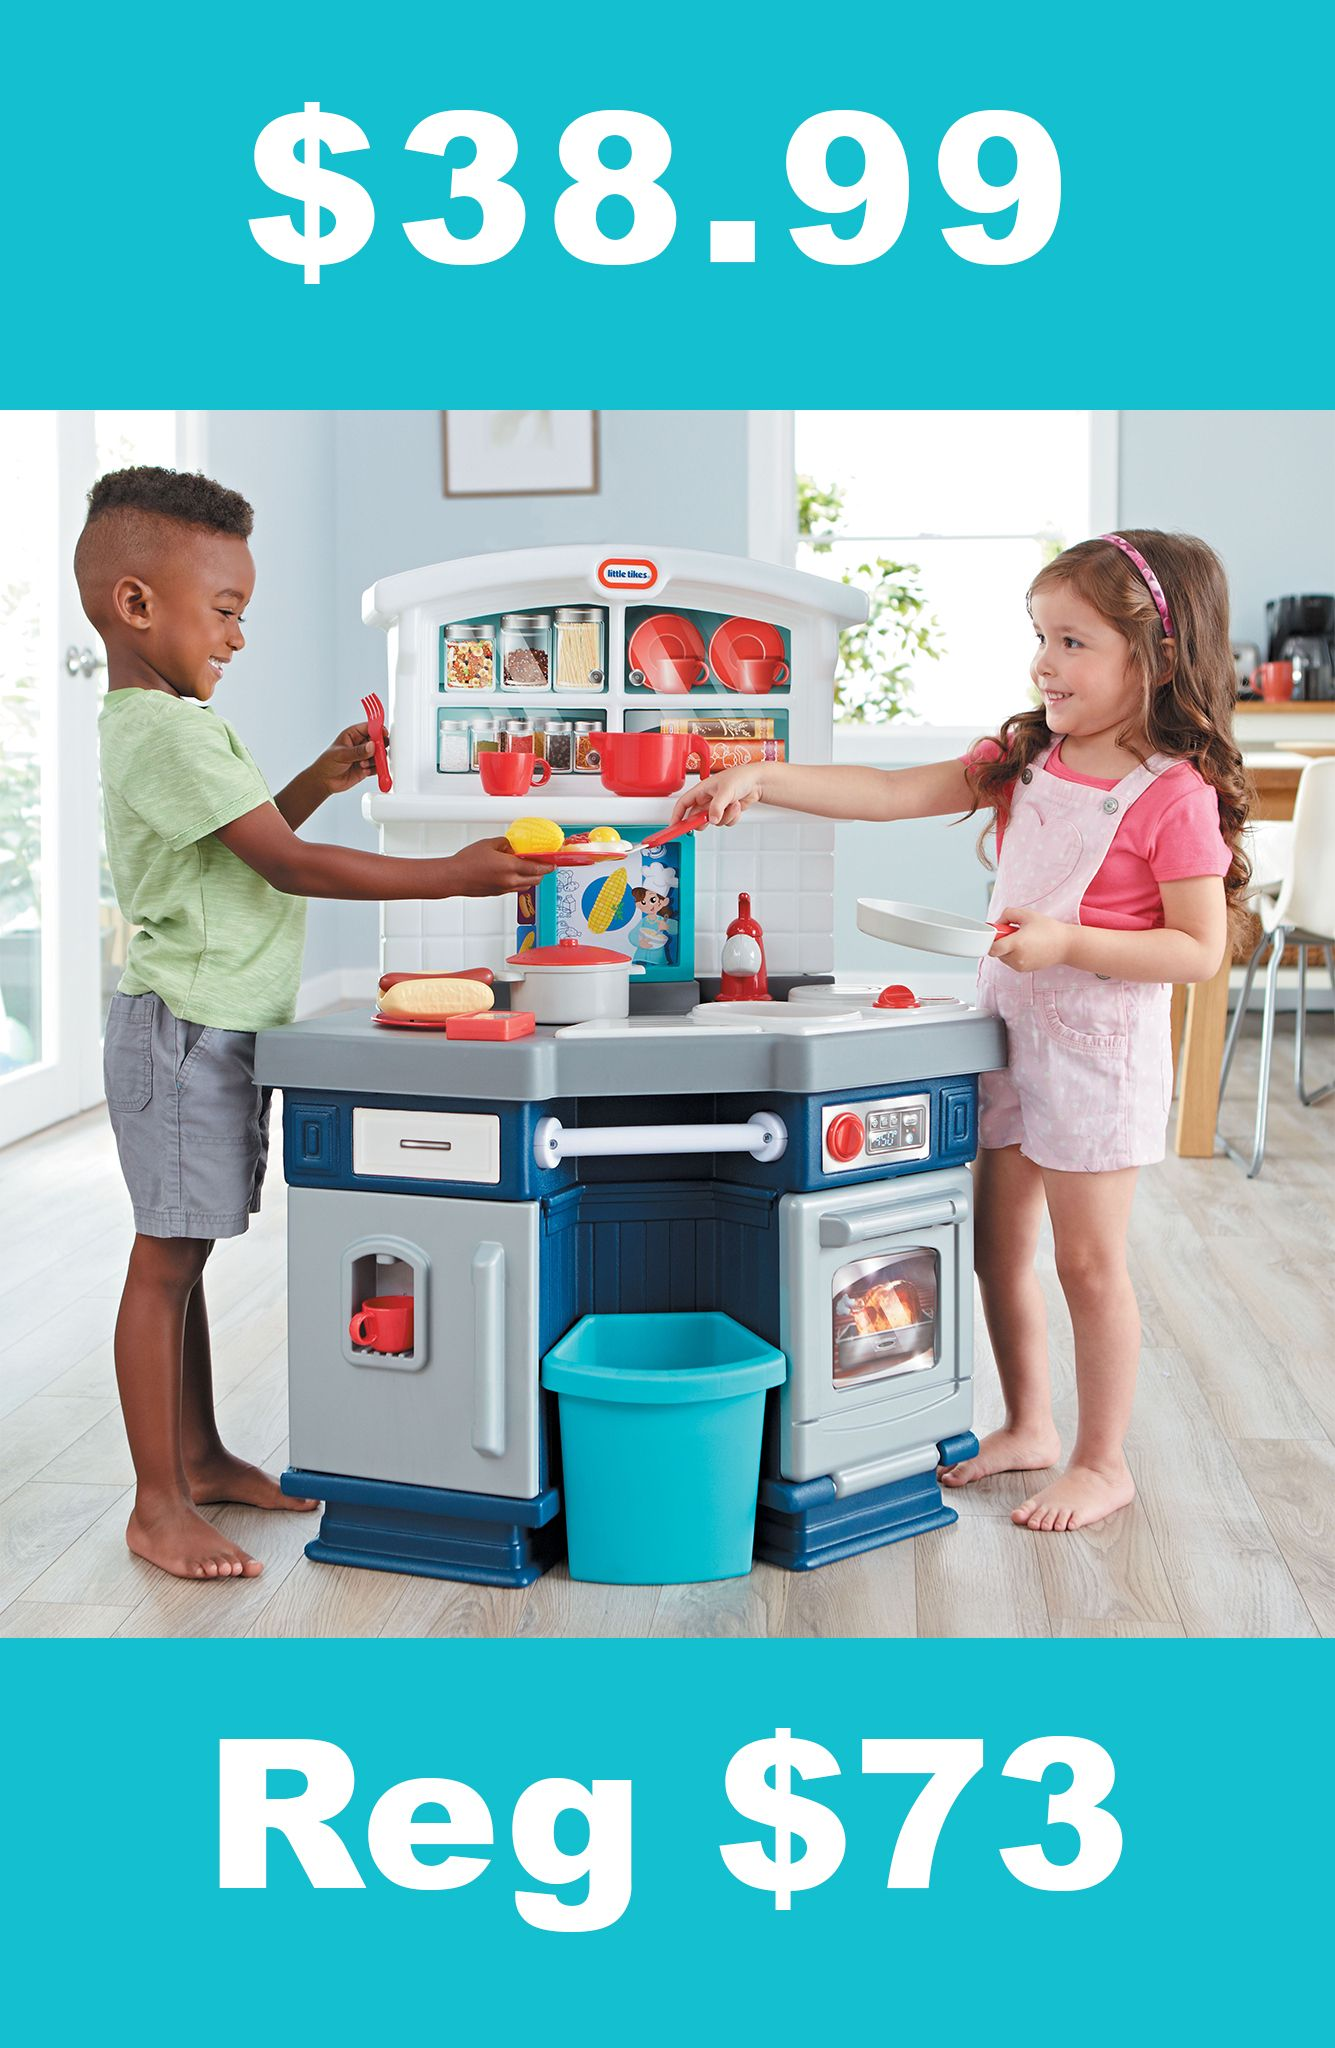 Little Tikes Cook With Me Kitchen Just $38.99 Shipped! (Reg $73)